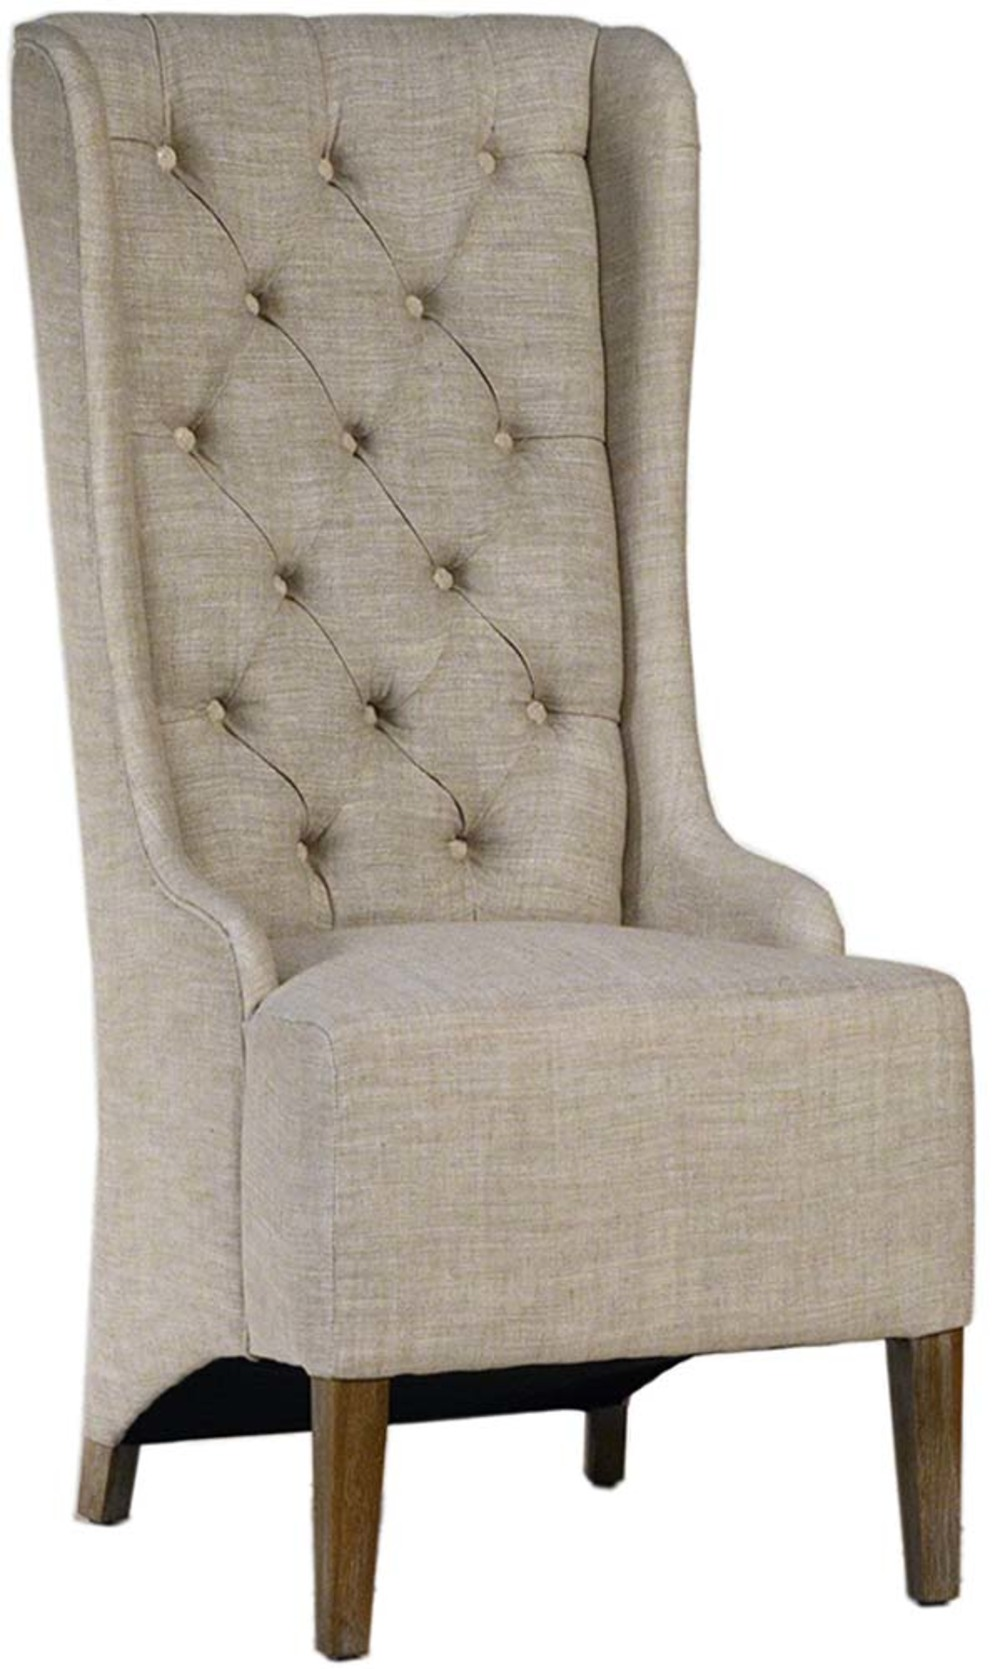 Dovetail Furniture - Sidney Dining Chair